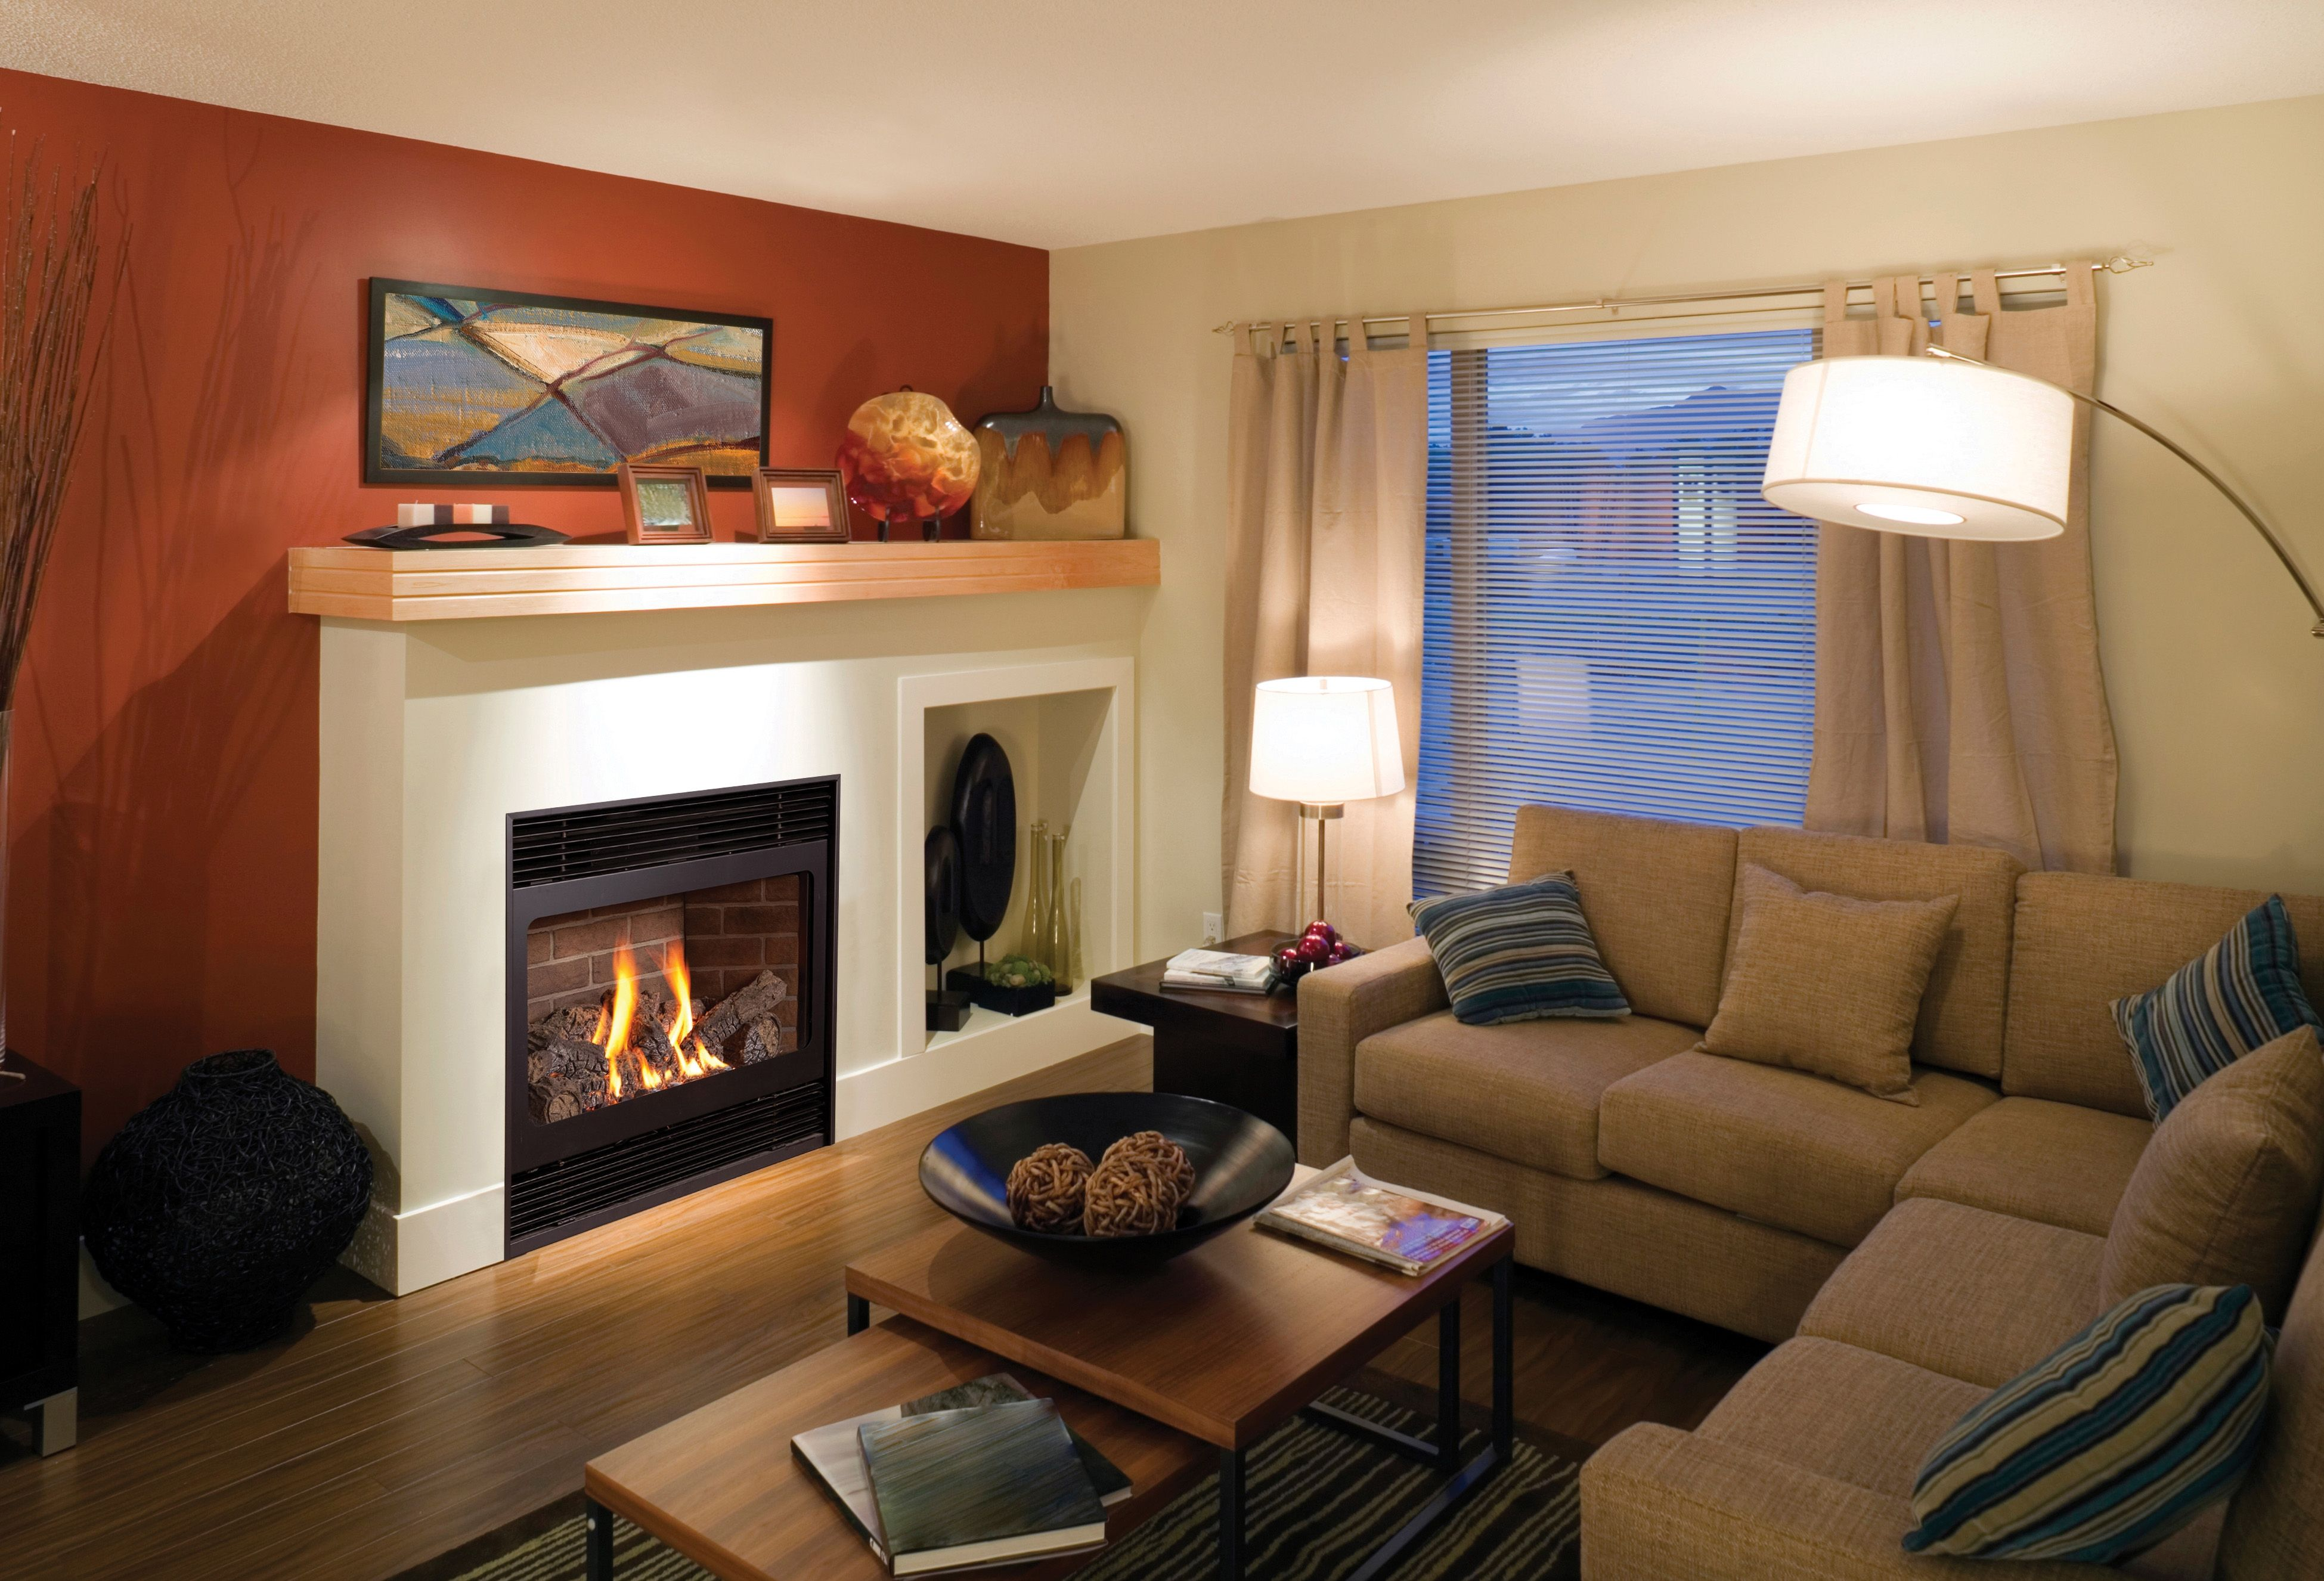 This Is Our U0027SP 36u0027 Direct Vent Gas Fireplace. For More Information, Visit  Us At Www.kozyheat.com/products